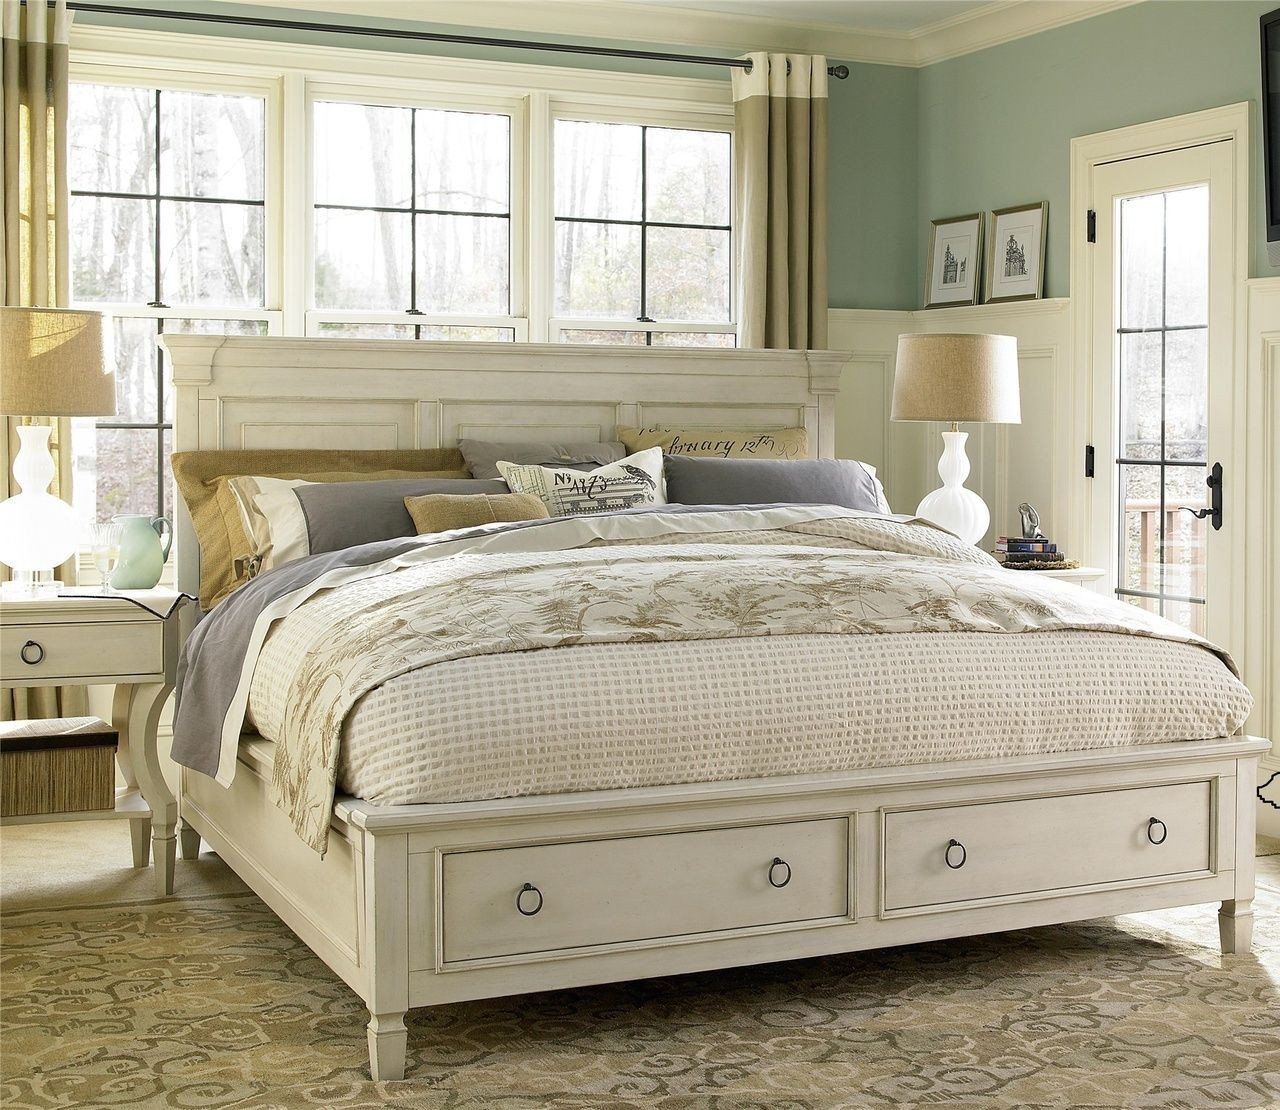 King Bedroom Set for Sale New Country Chic Wood King Size White Storage Bed